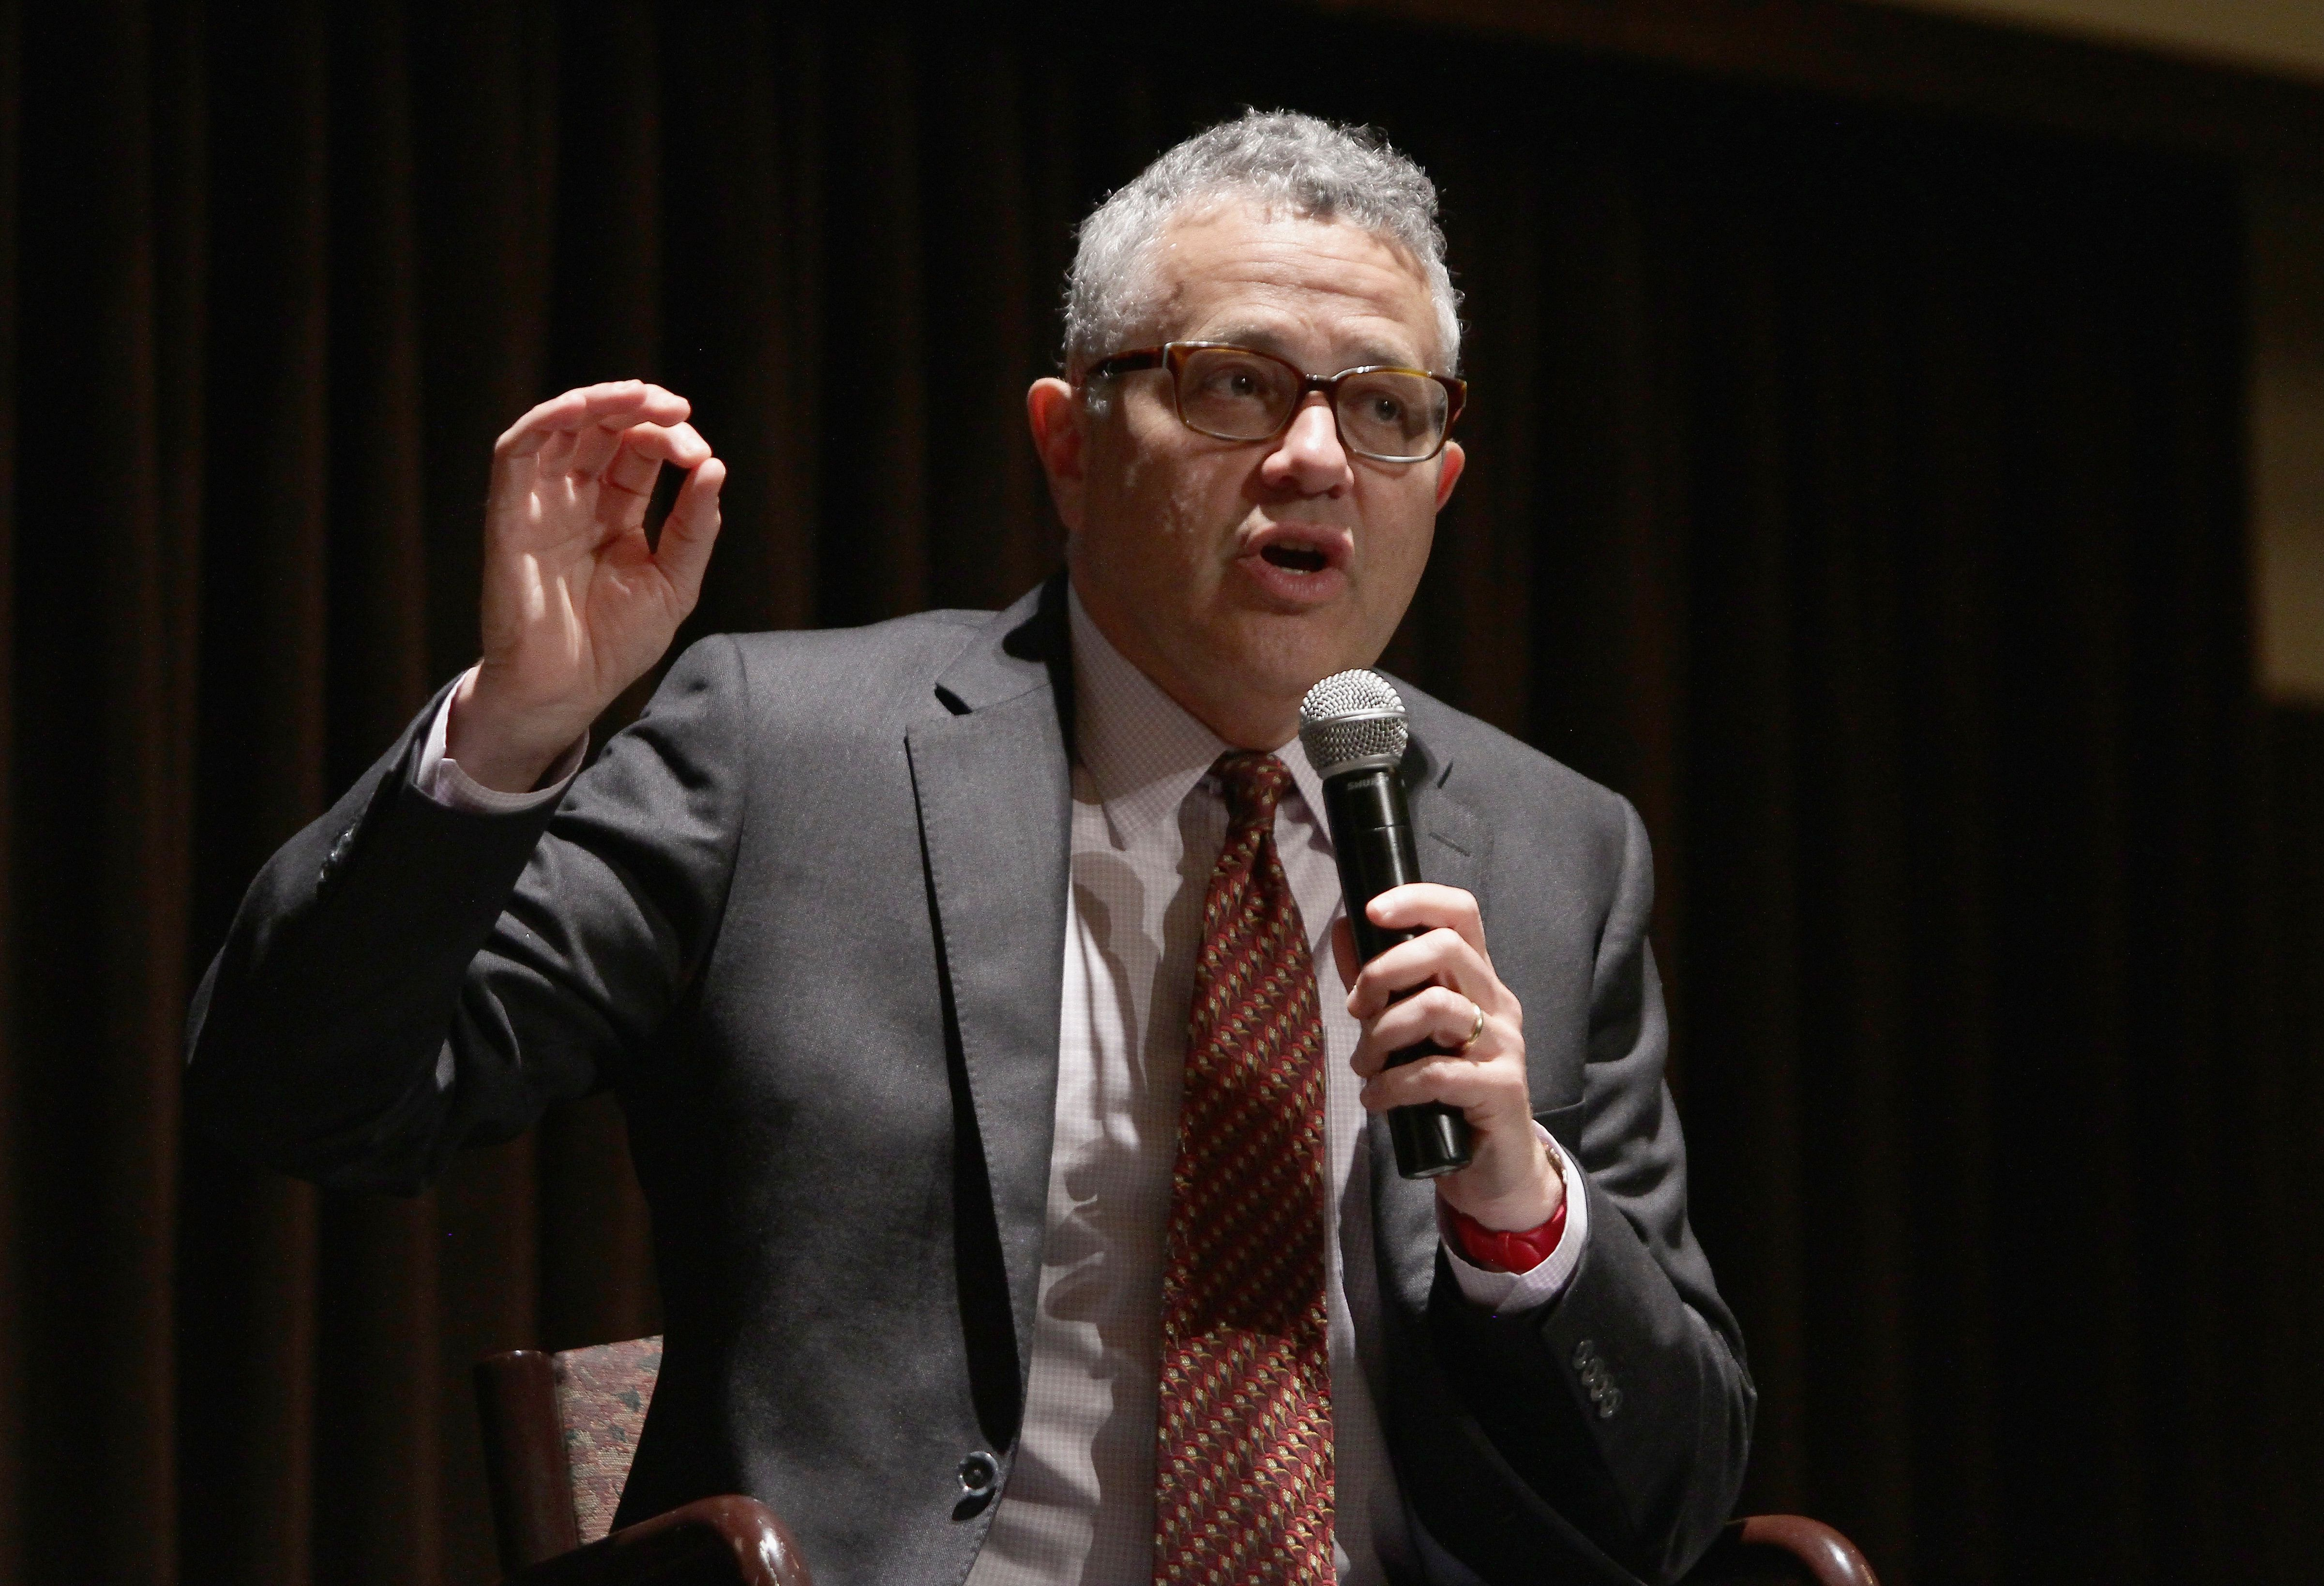 PALM BEACH, FL - APRIL 22:  Author Jeffery Toobin attends book signing during the Palm Beach book Festival at Florida Atlantic College on April 21, 2017 in Palm Beach, Florida.  (Photo by Mychal Watts/Getty Images)